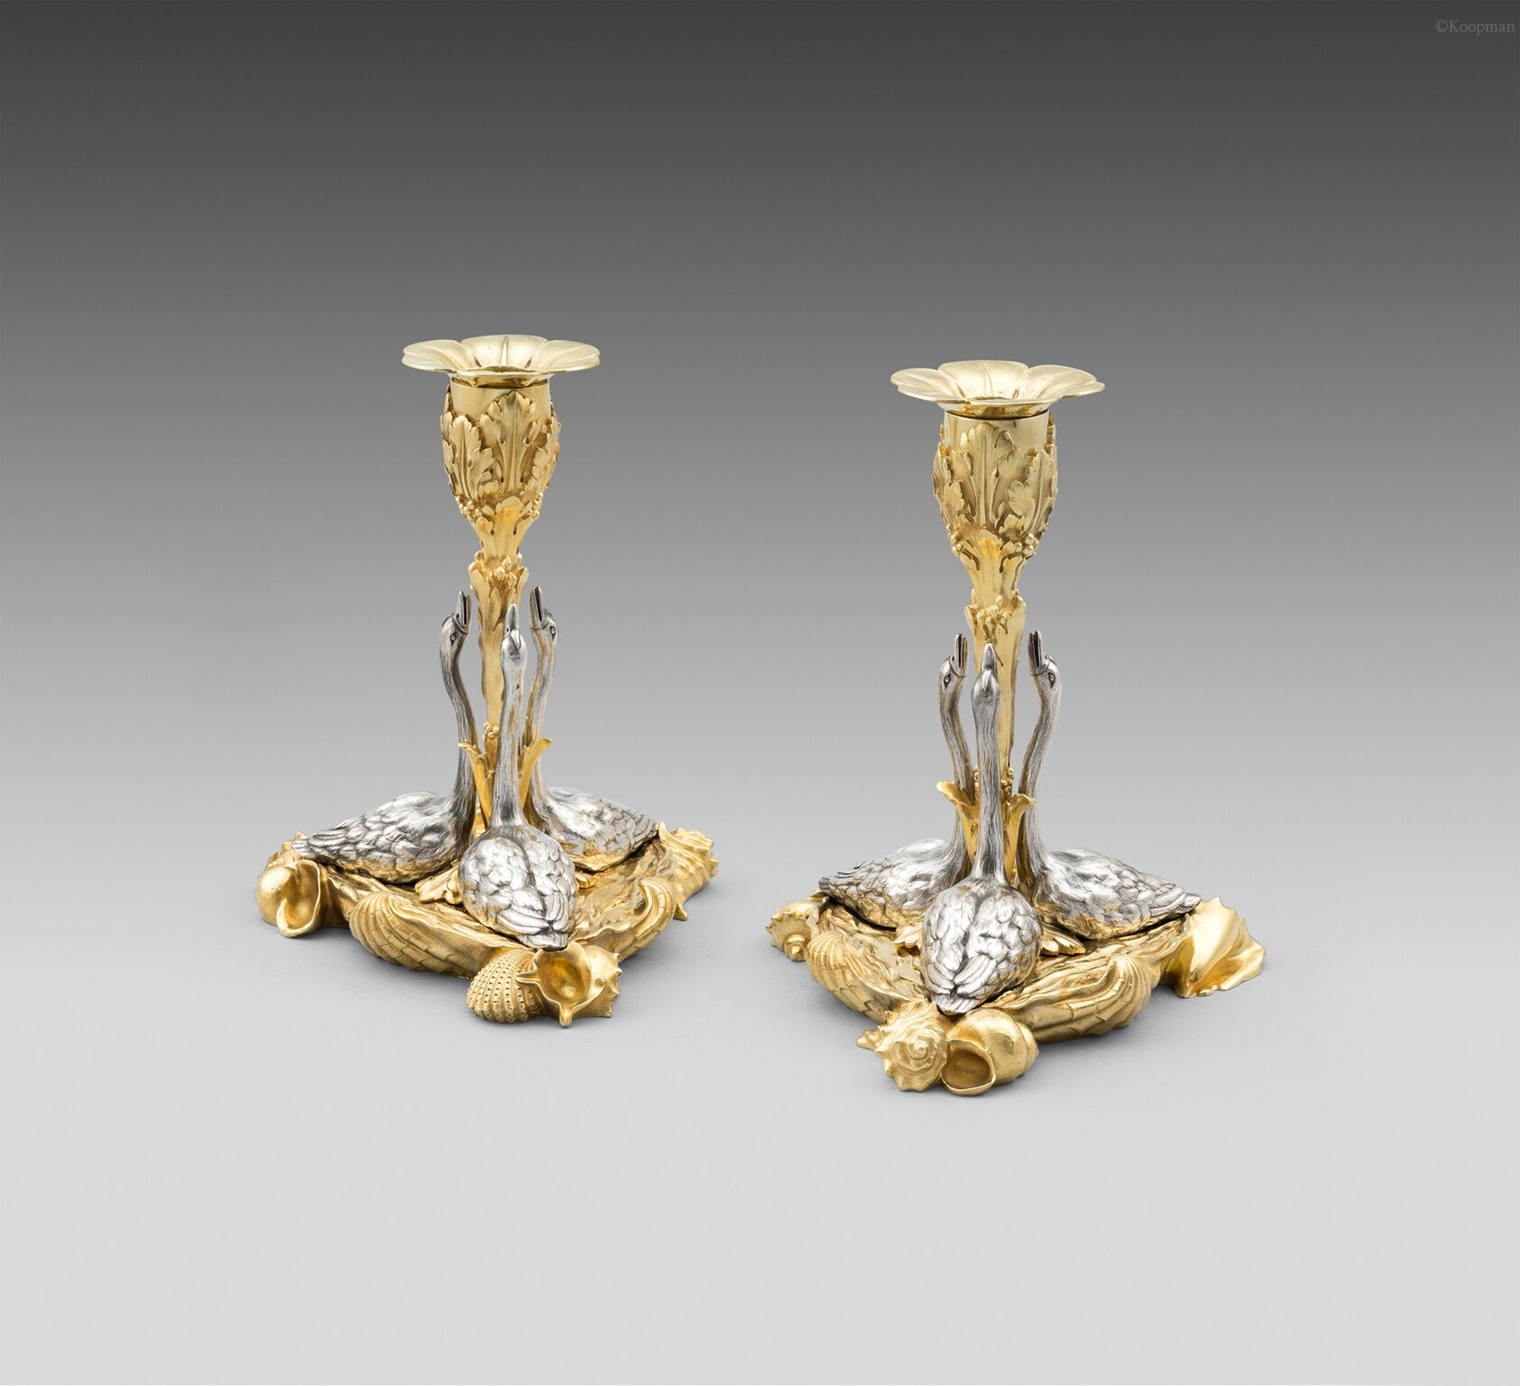 An Exceptional Pair of William IV Swan Candlesticks